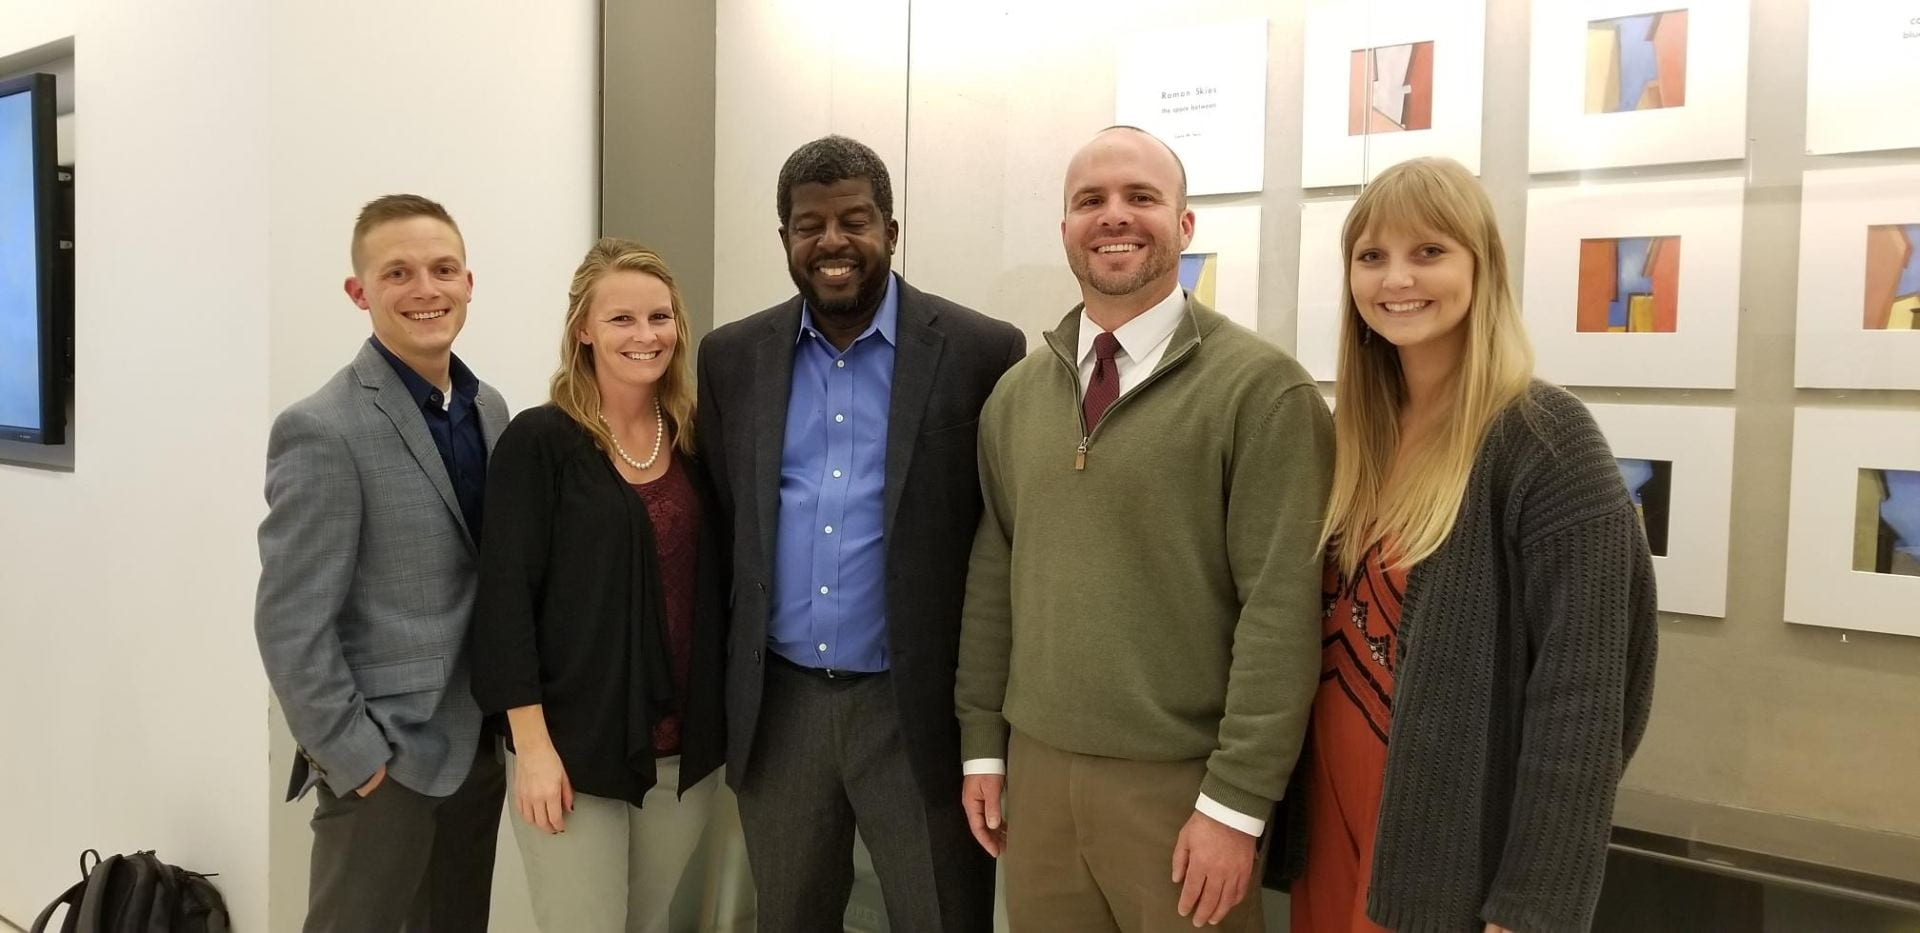 This team coordinated efforts that made Global Ethics Day a success. Pictured, Academic Integrity and Initiatives staff from left, graduate assistant JD DiLoreto, program coordinator Hannah Johnson, VDP Holmes, executive director Chris Bryson, and ASG coordinator Carsen Sims, Oct. 2018